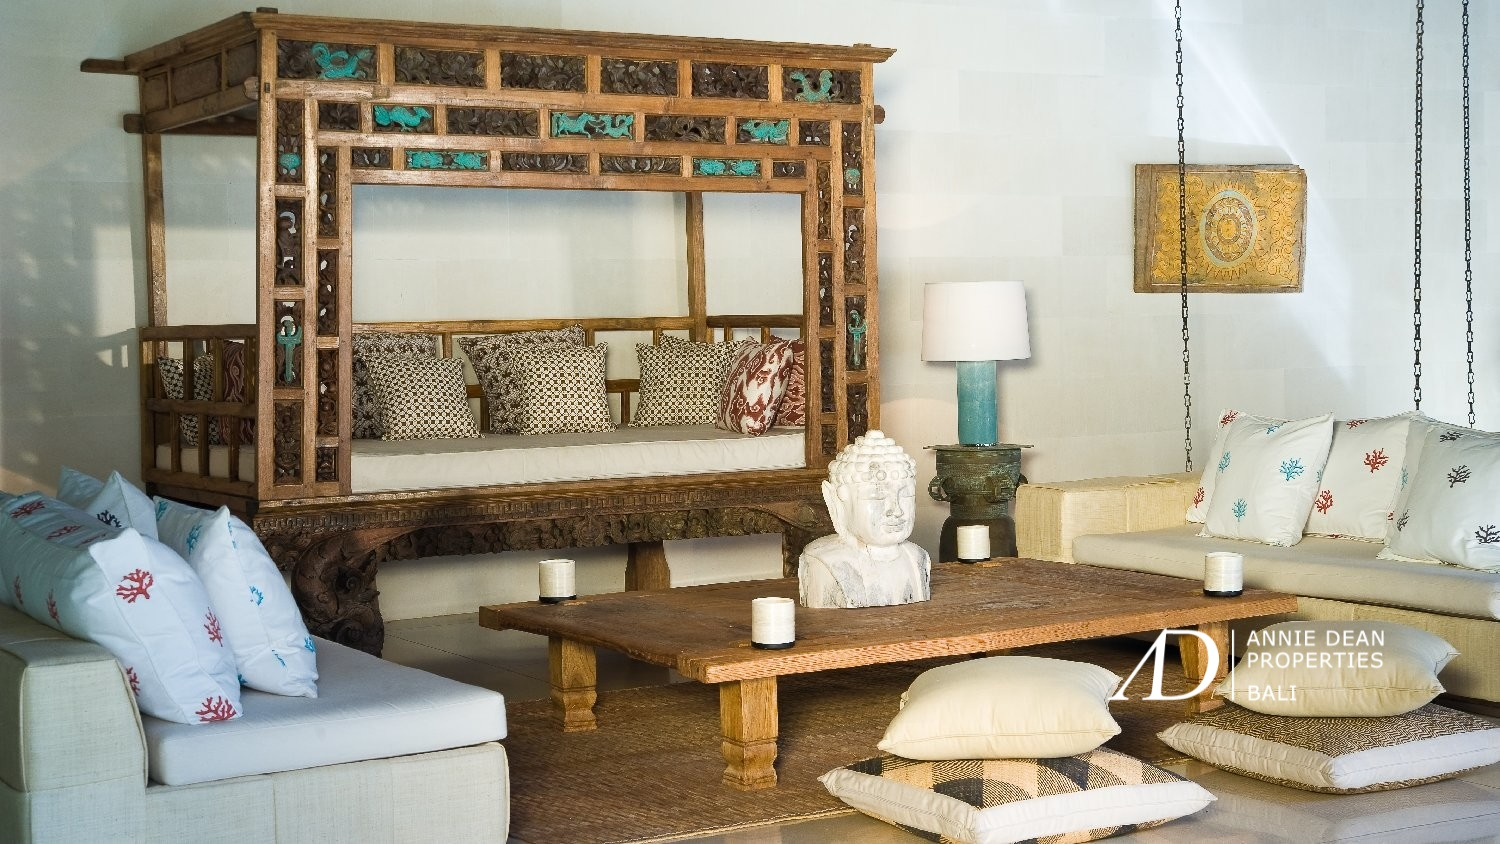 EXCEPTIONAL FREEHOLD VILLA IN SEMINYAK